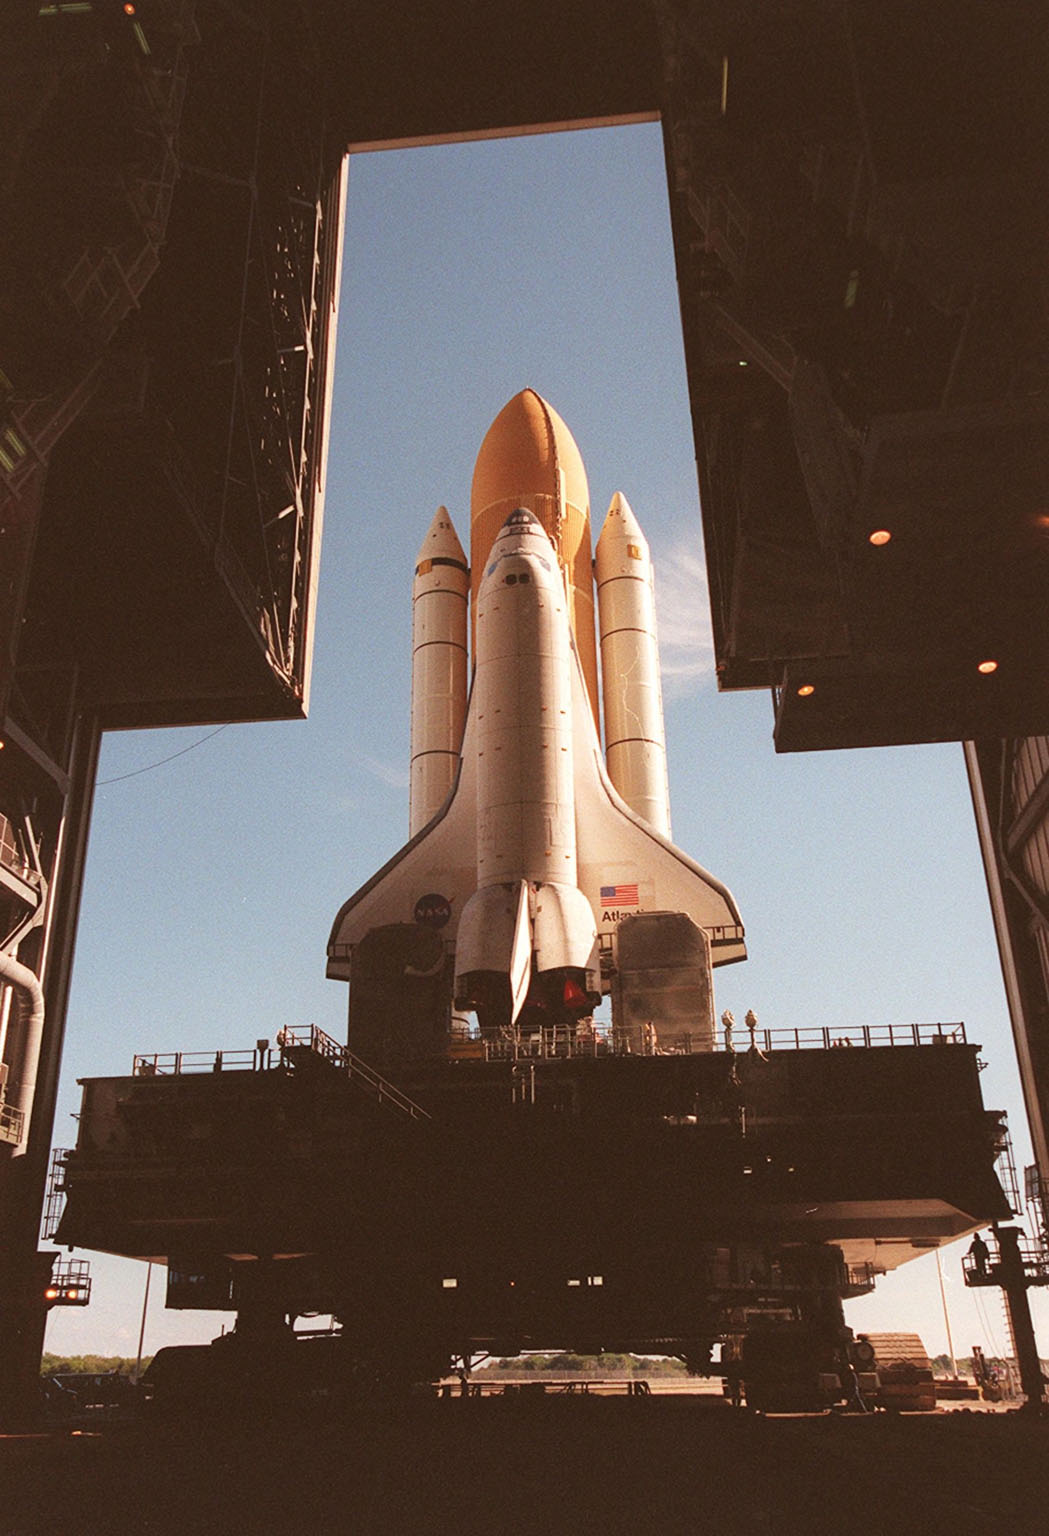 KENNEDY SPACE CENTER, Fla. -- Space Shuttle Atlantis inches its way out the doors of the Vehicle Assembly Building as it begins rolling out to Launch Pad 39A for the second time. An attempt to roll out on Jan. 2 incurred a failed computer processor on the crawler transporter and the Shuttle was returned to the Vehicle Assembly Building using a secondary computer processor on the vehicle. Atlantis will fly on mission STS-98, the seventh construction flight to the International Space Station, carrying the U.S. Laboratory, named Destiny. The lab will have five system racks already installed inside the module. After delivery of electronics in the lab, electrically powered attitude control for Control Moment Gyroscopes will be activated. Atlantis is scheduled for launch no earlier than Jan. 19, 2001, with a crew of five